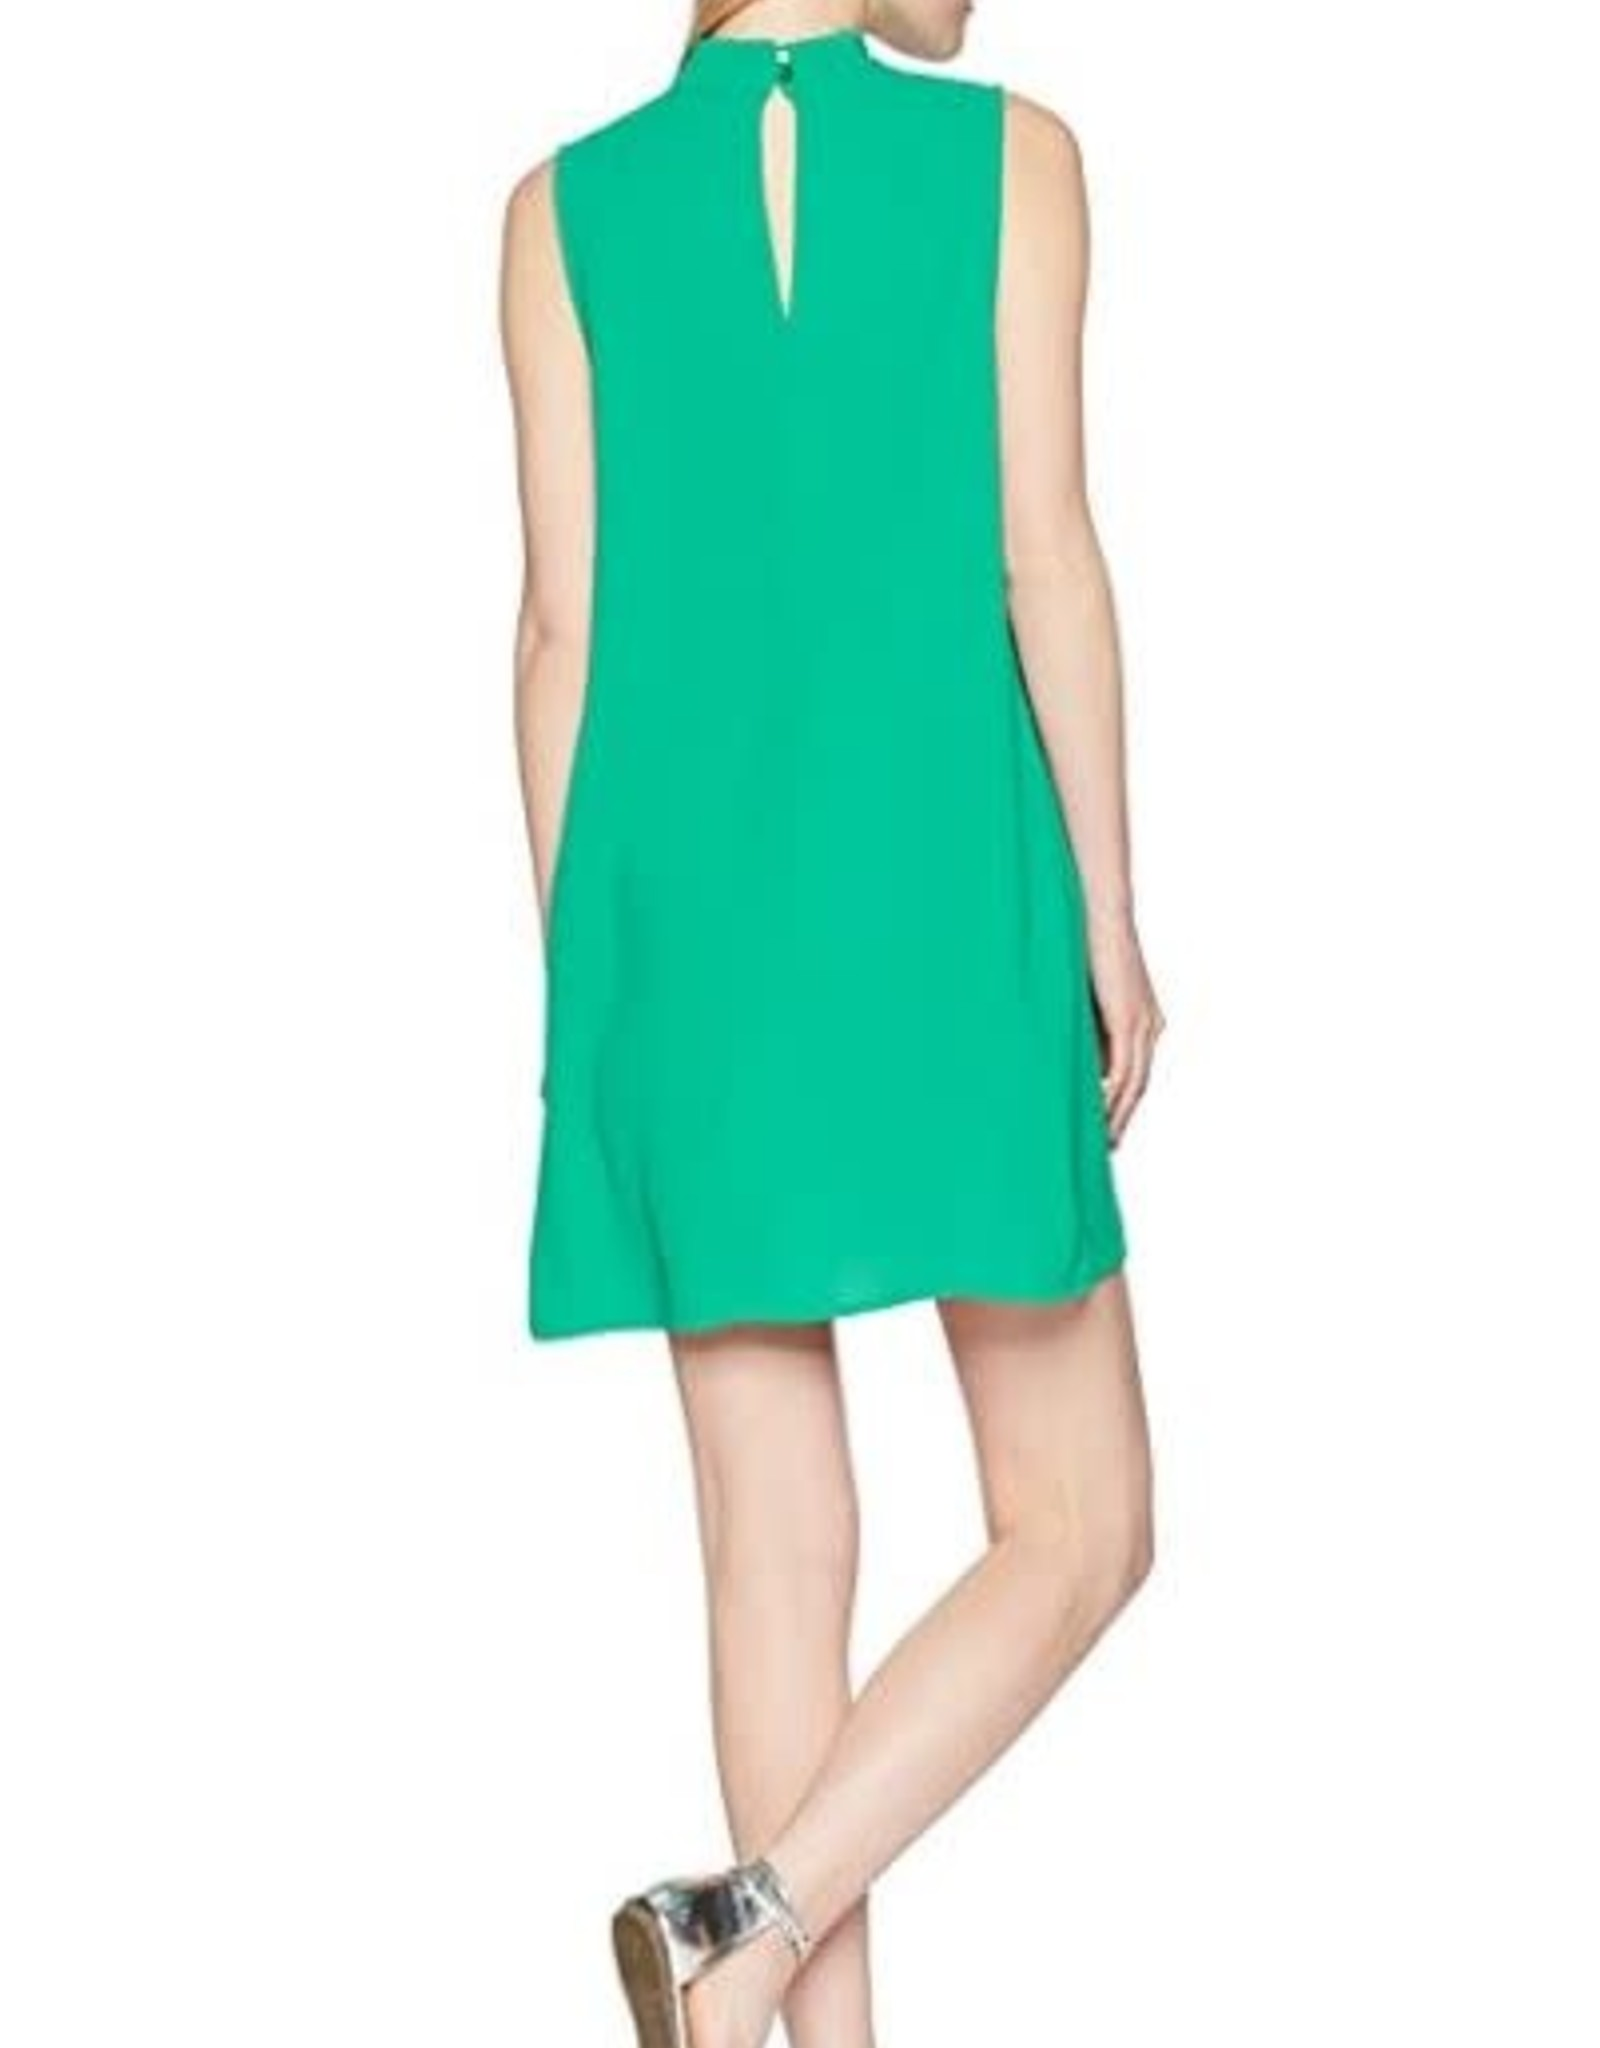 Jack Pepper Green Dress